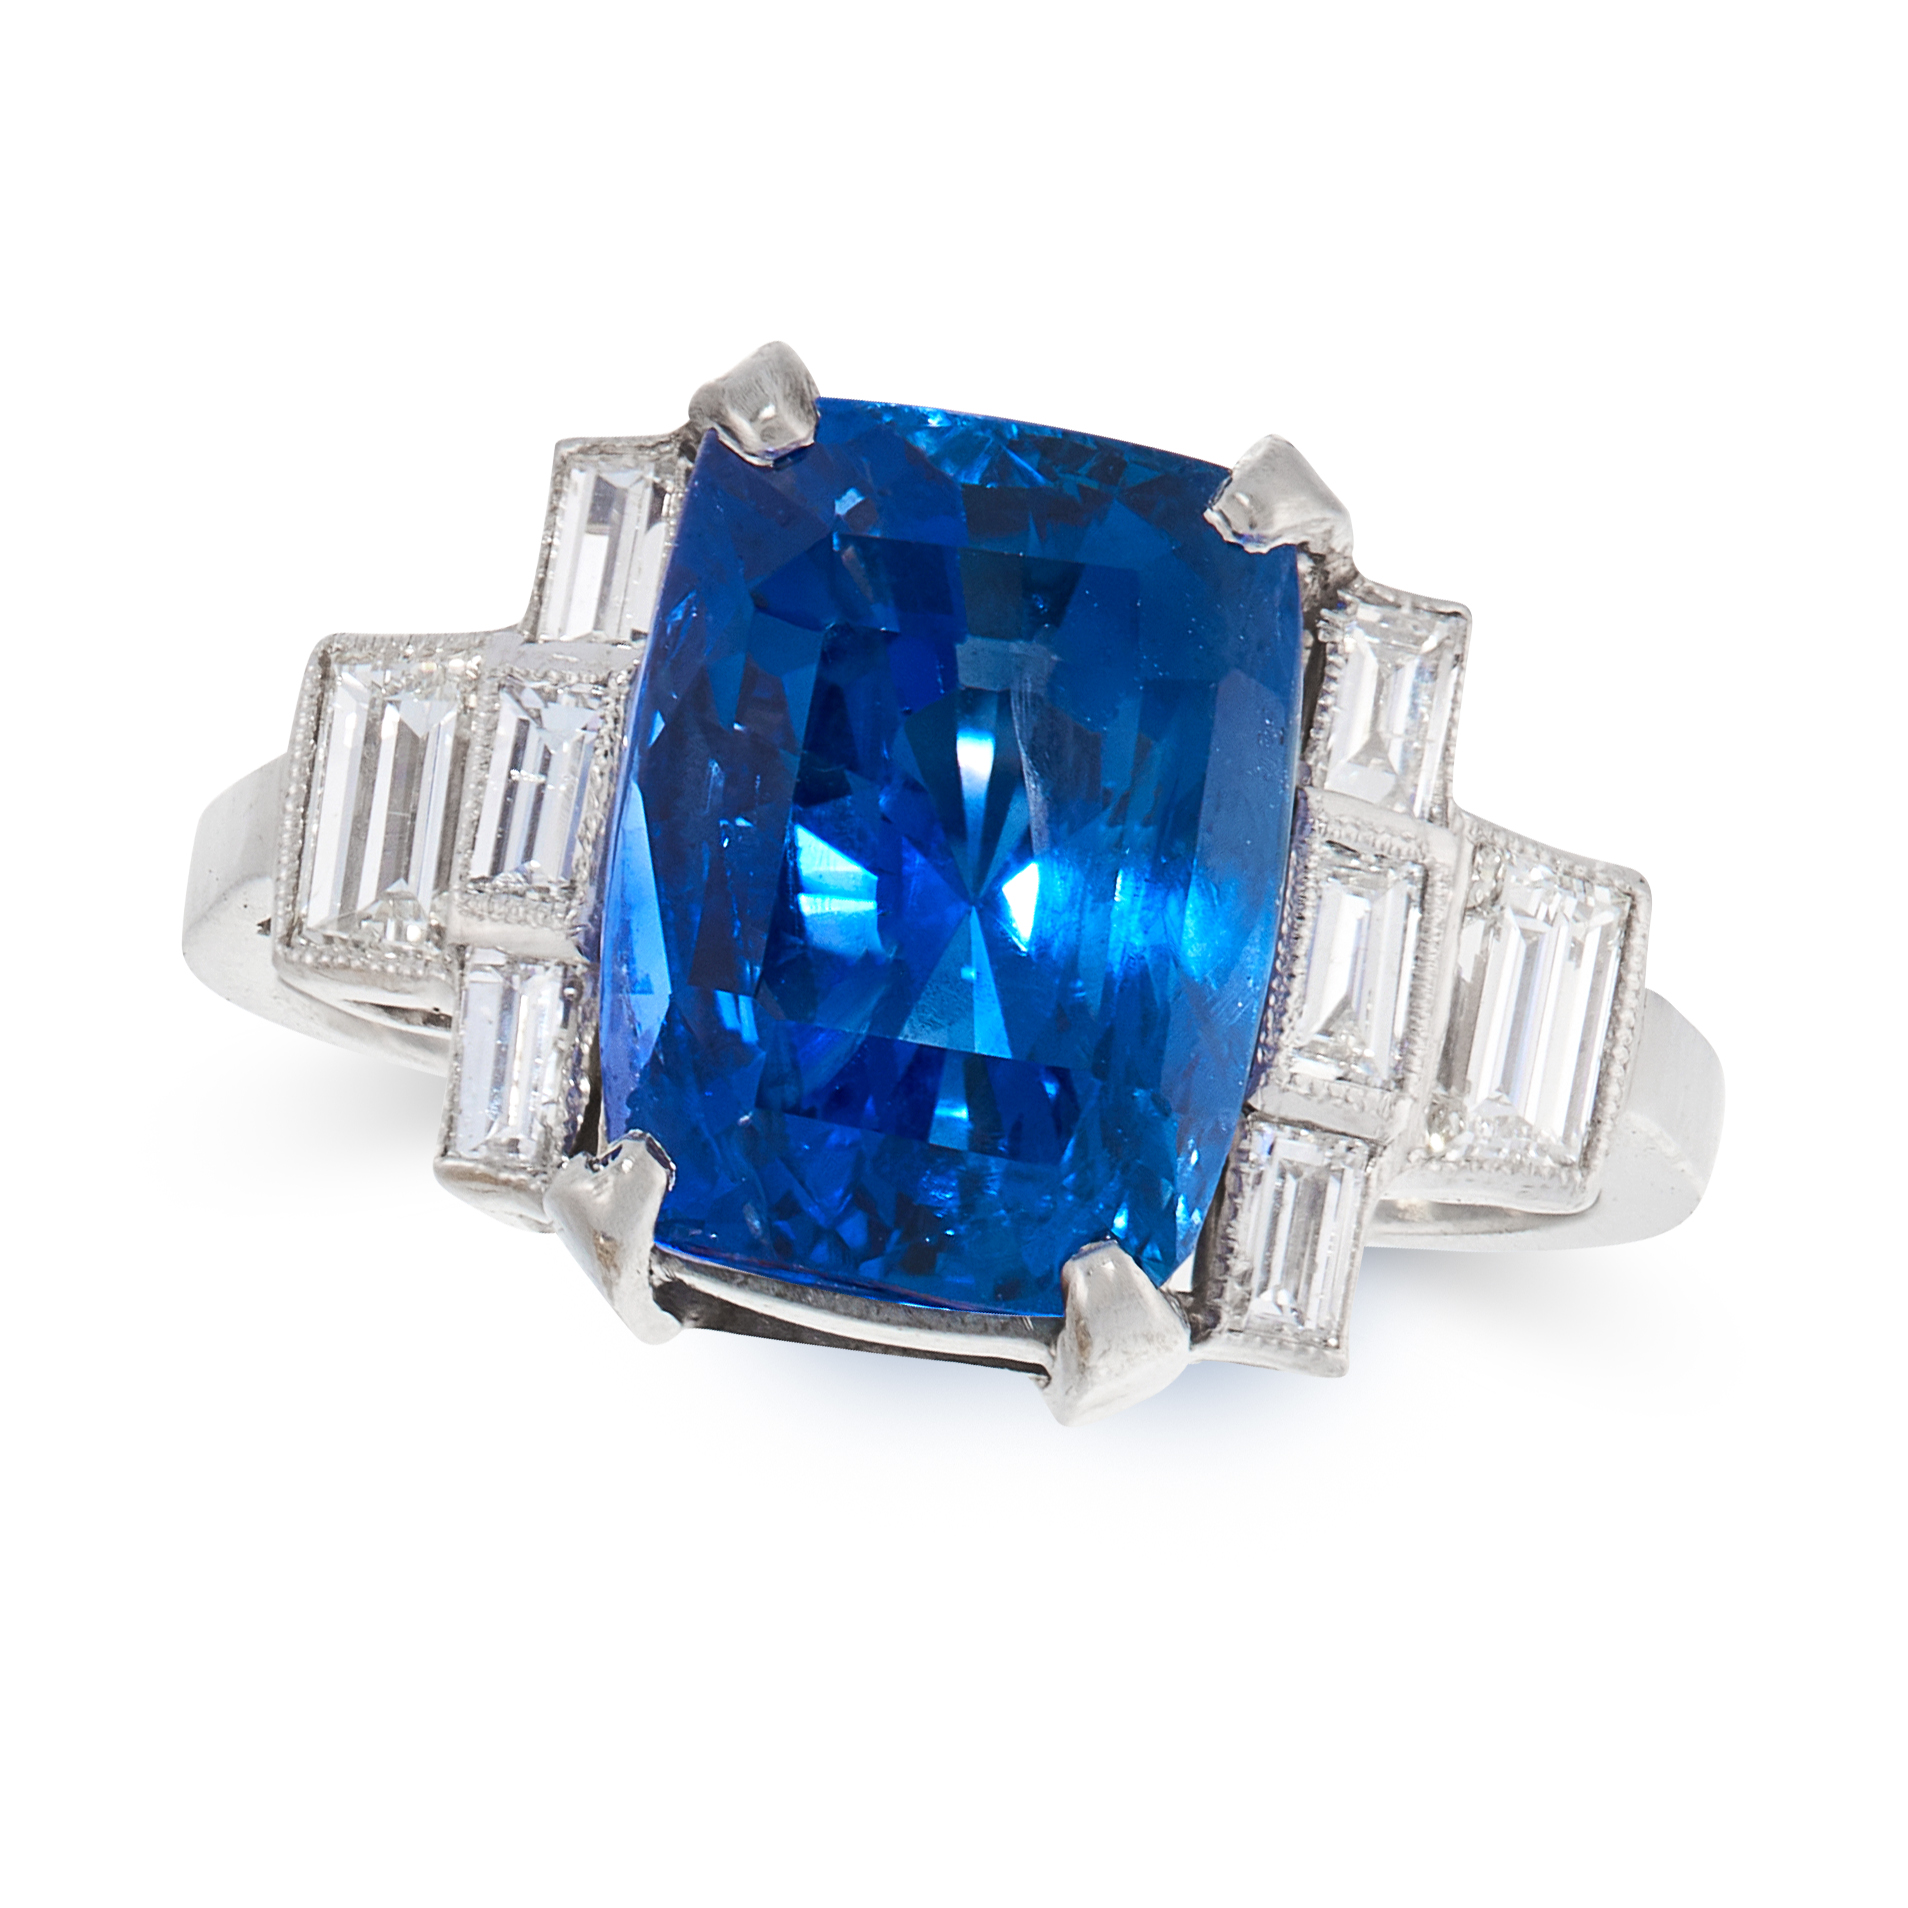 AN UNHEATED SAPPHIRE AND DIAMOND DRESS RING in platinum, set with a mixed step cut blue sapphire